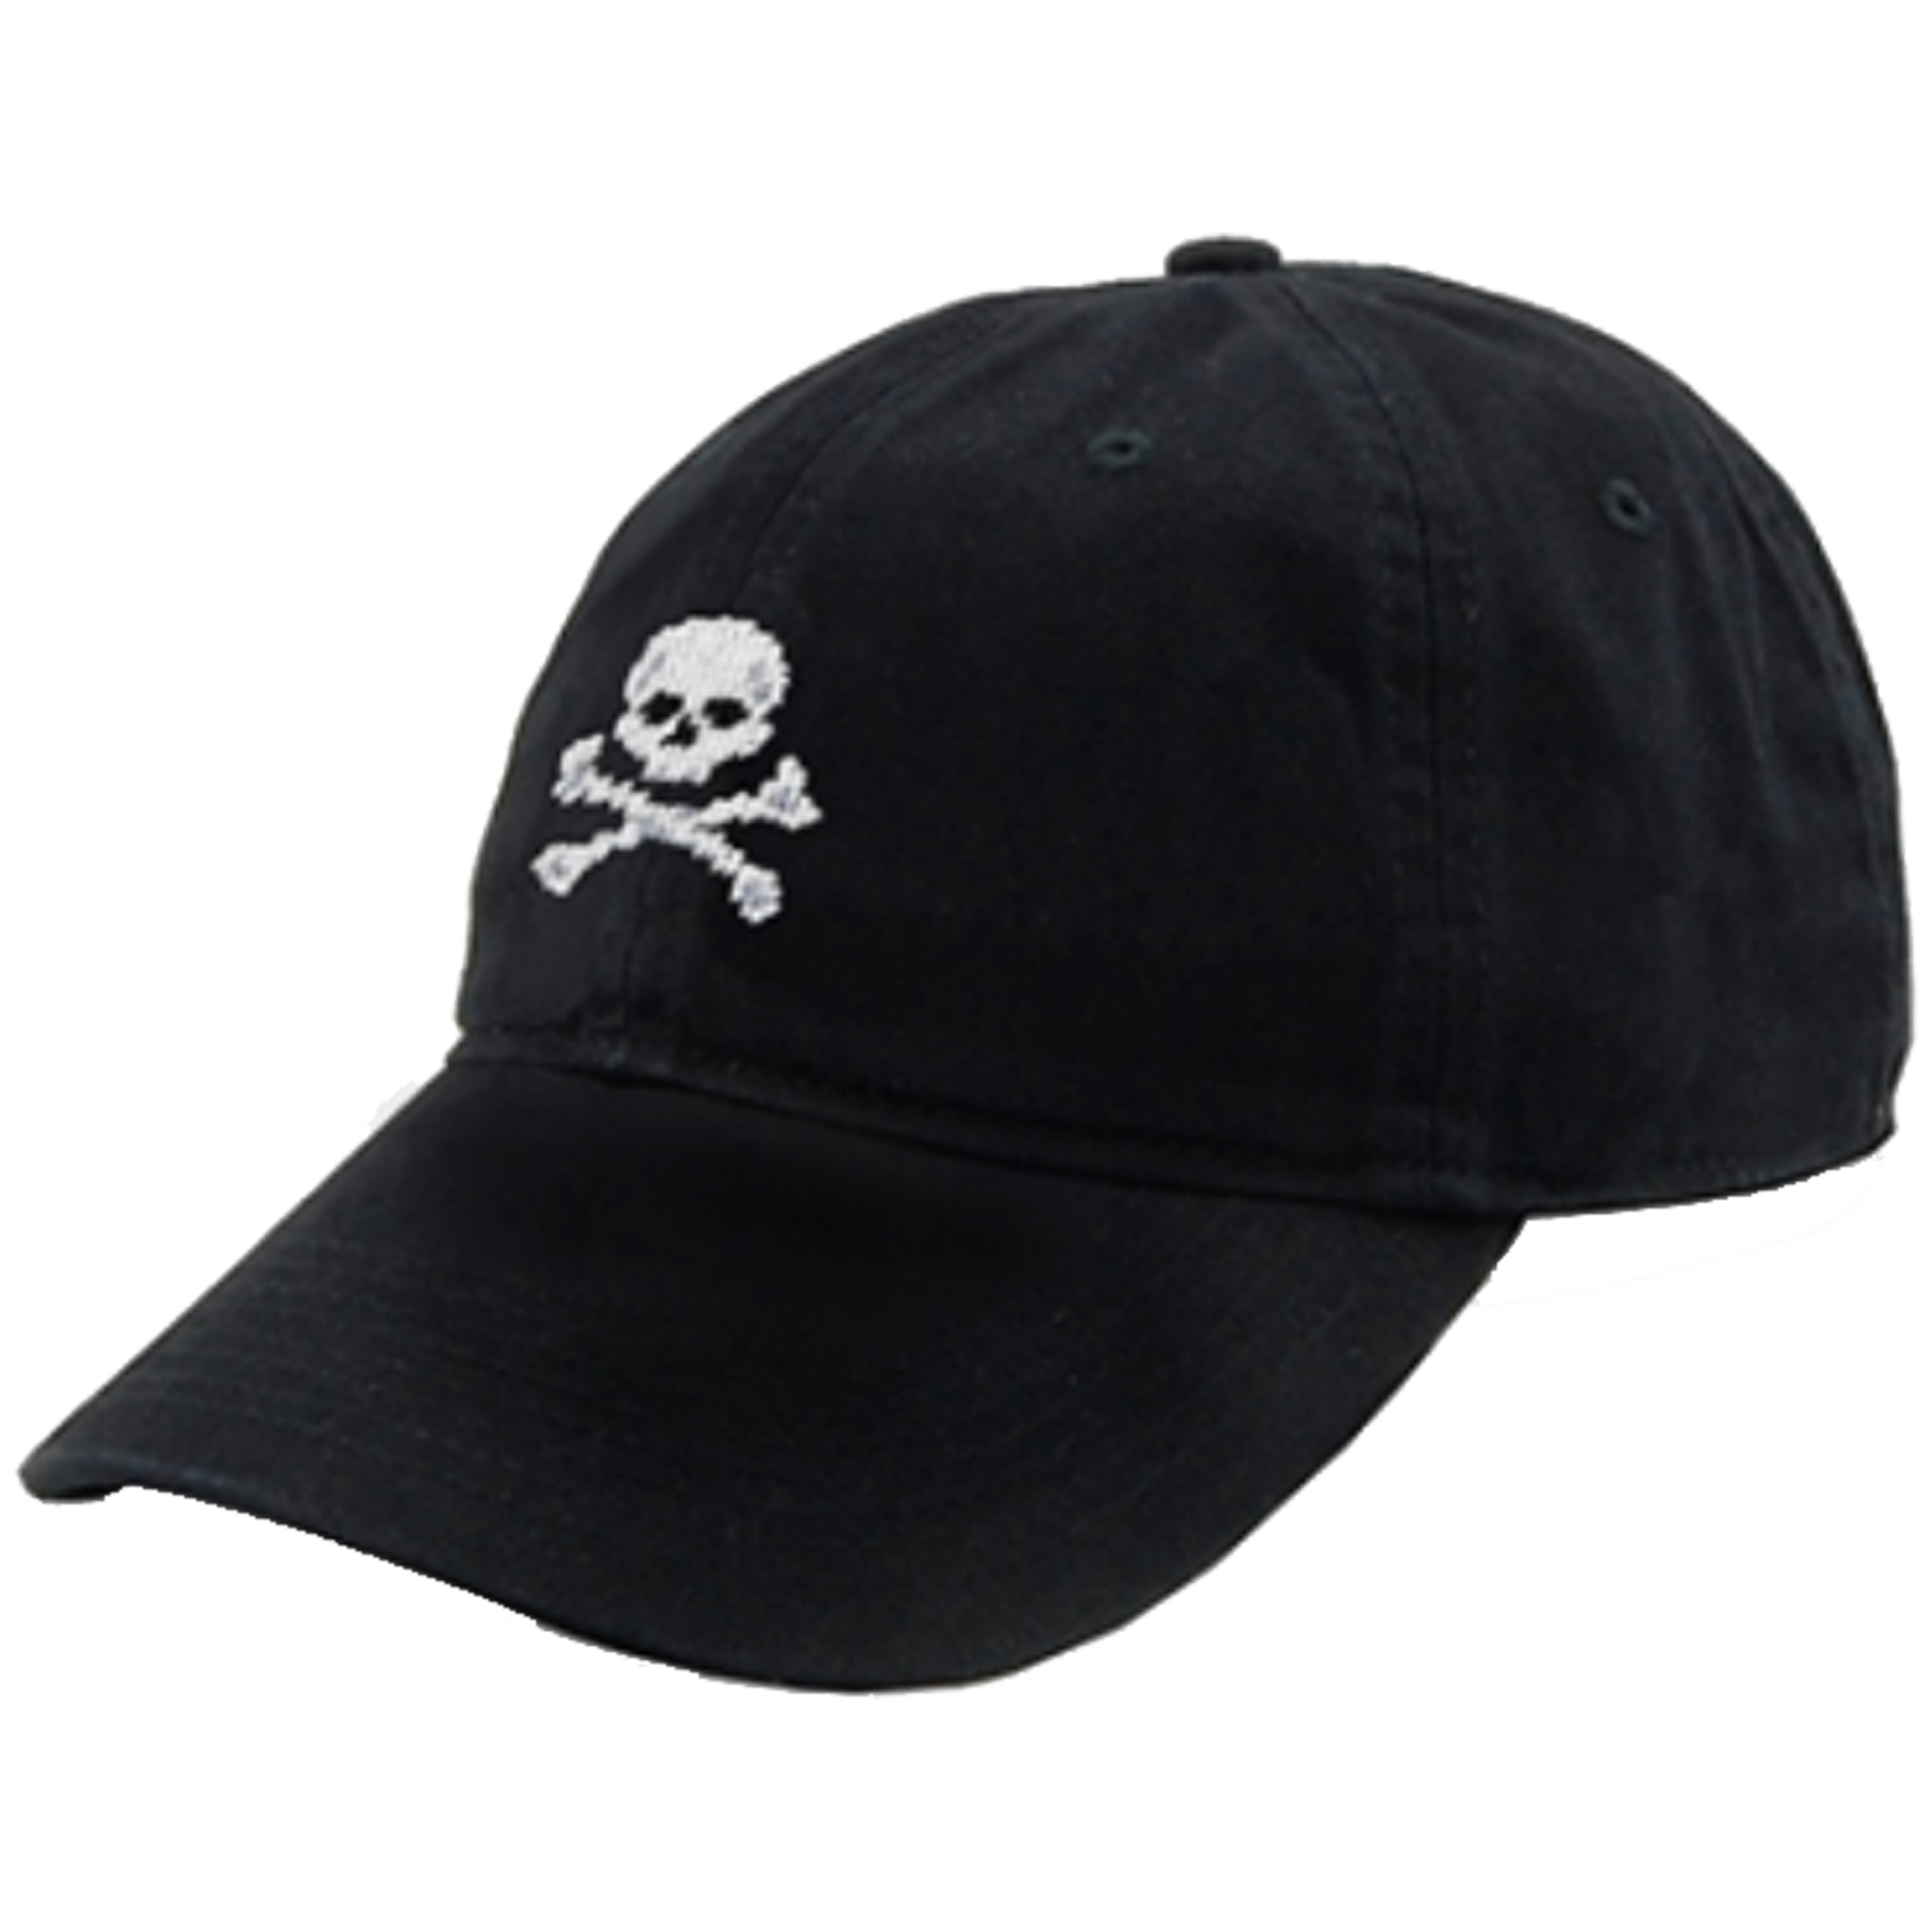 Smathers & Branson Needlepoint Hat - Jolly Roger